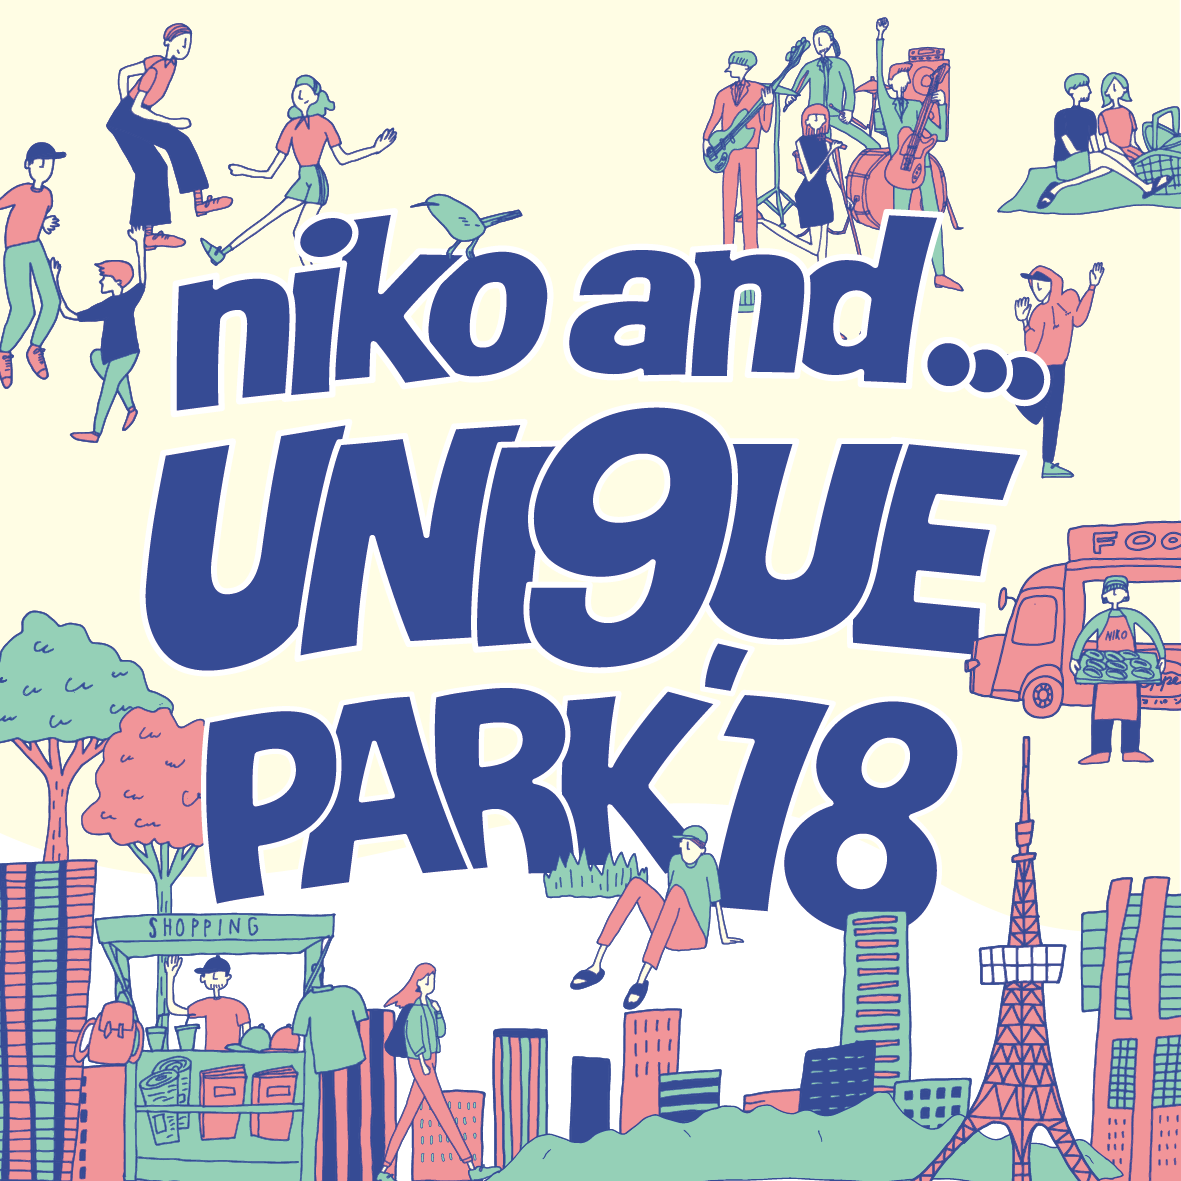 niko and ... が初プロデュースする音楽フェス「niko and ... UNI9UE(ユニーク) PARK(パーク)'18」にてチャリティーストア開催!